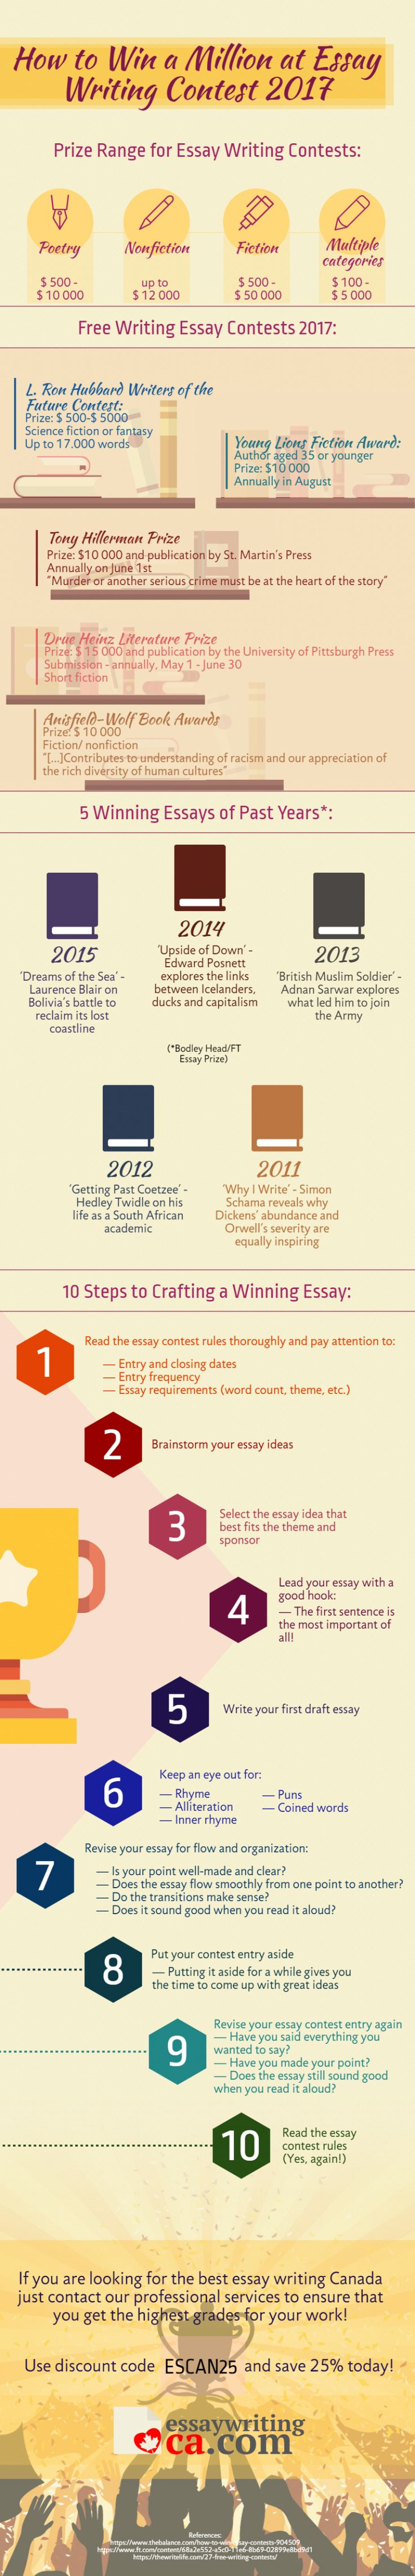 best ideas about essay writing competition these amazing tips will show you how to win essay competition so make sure to check